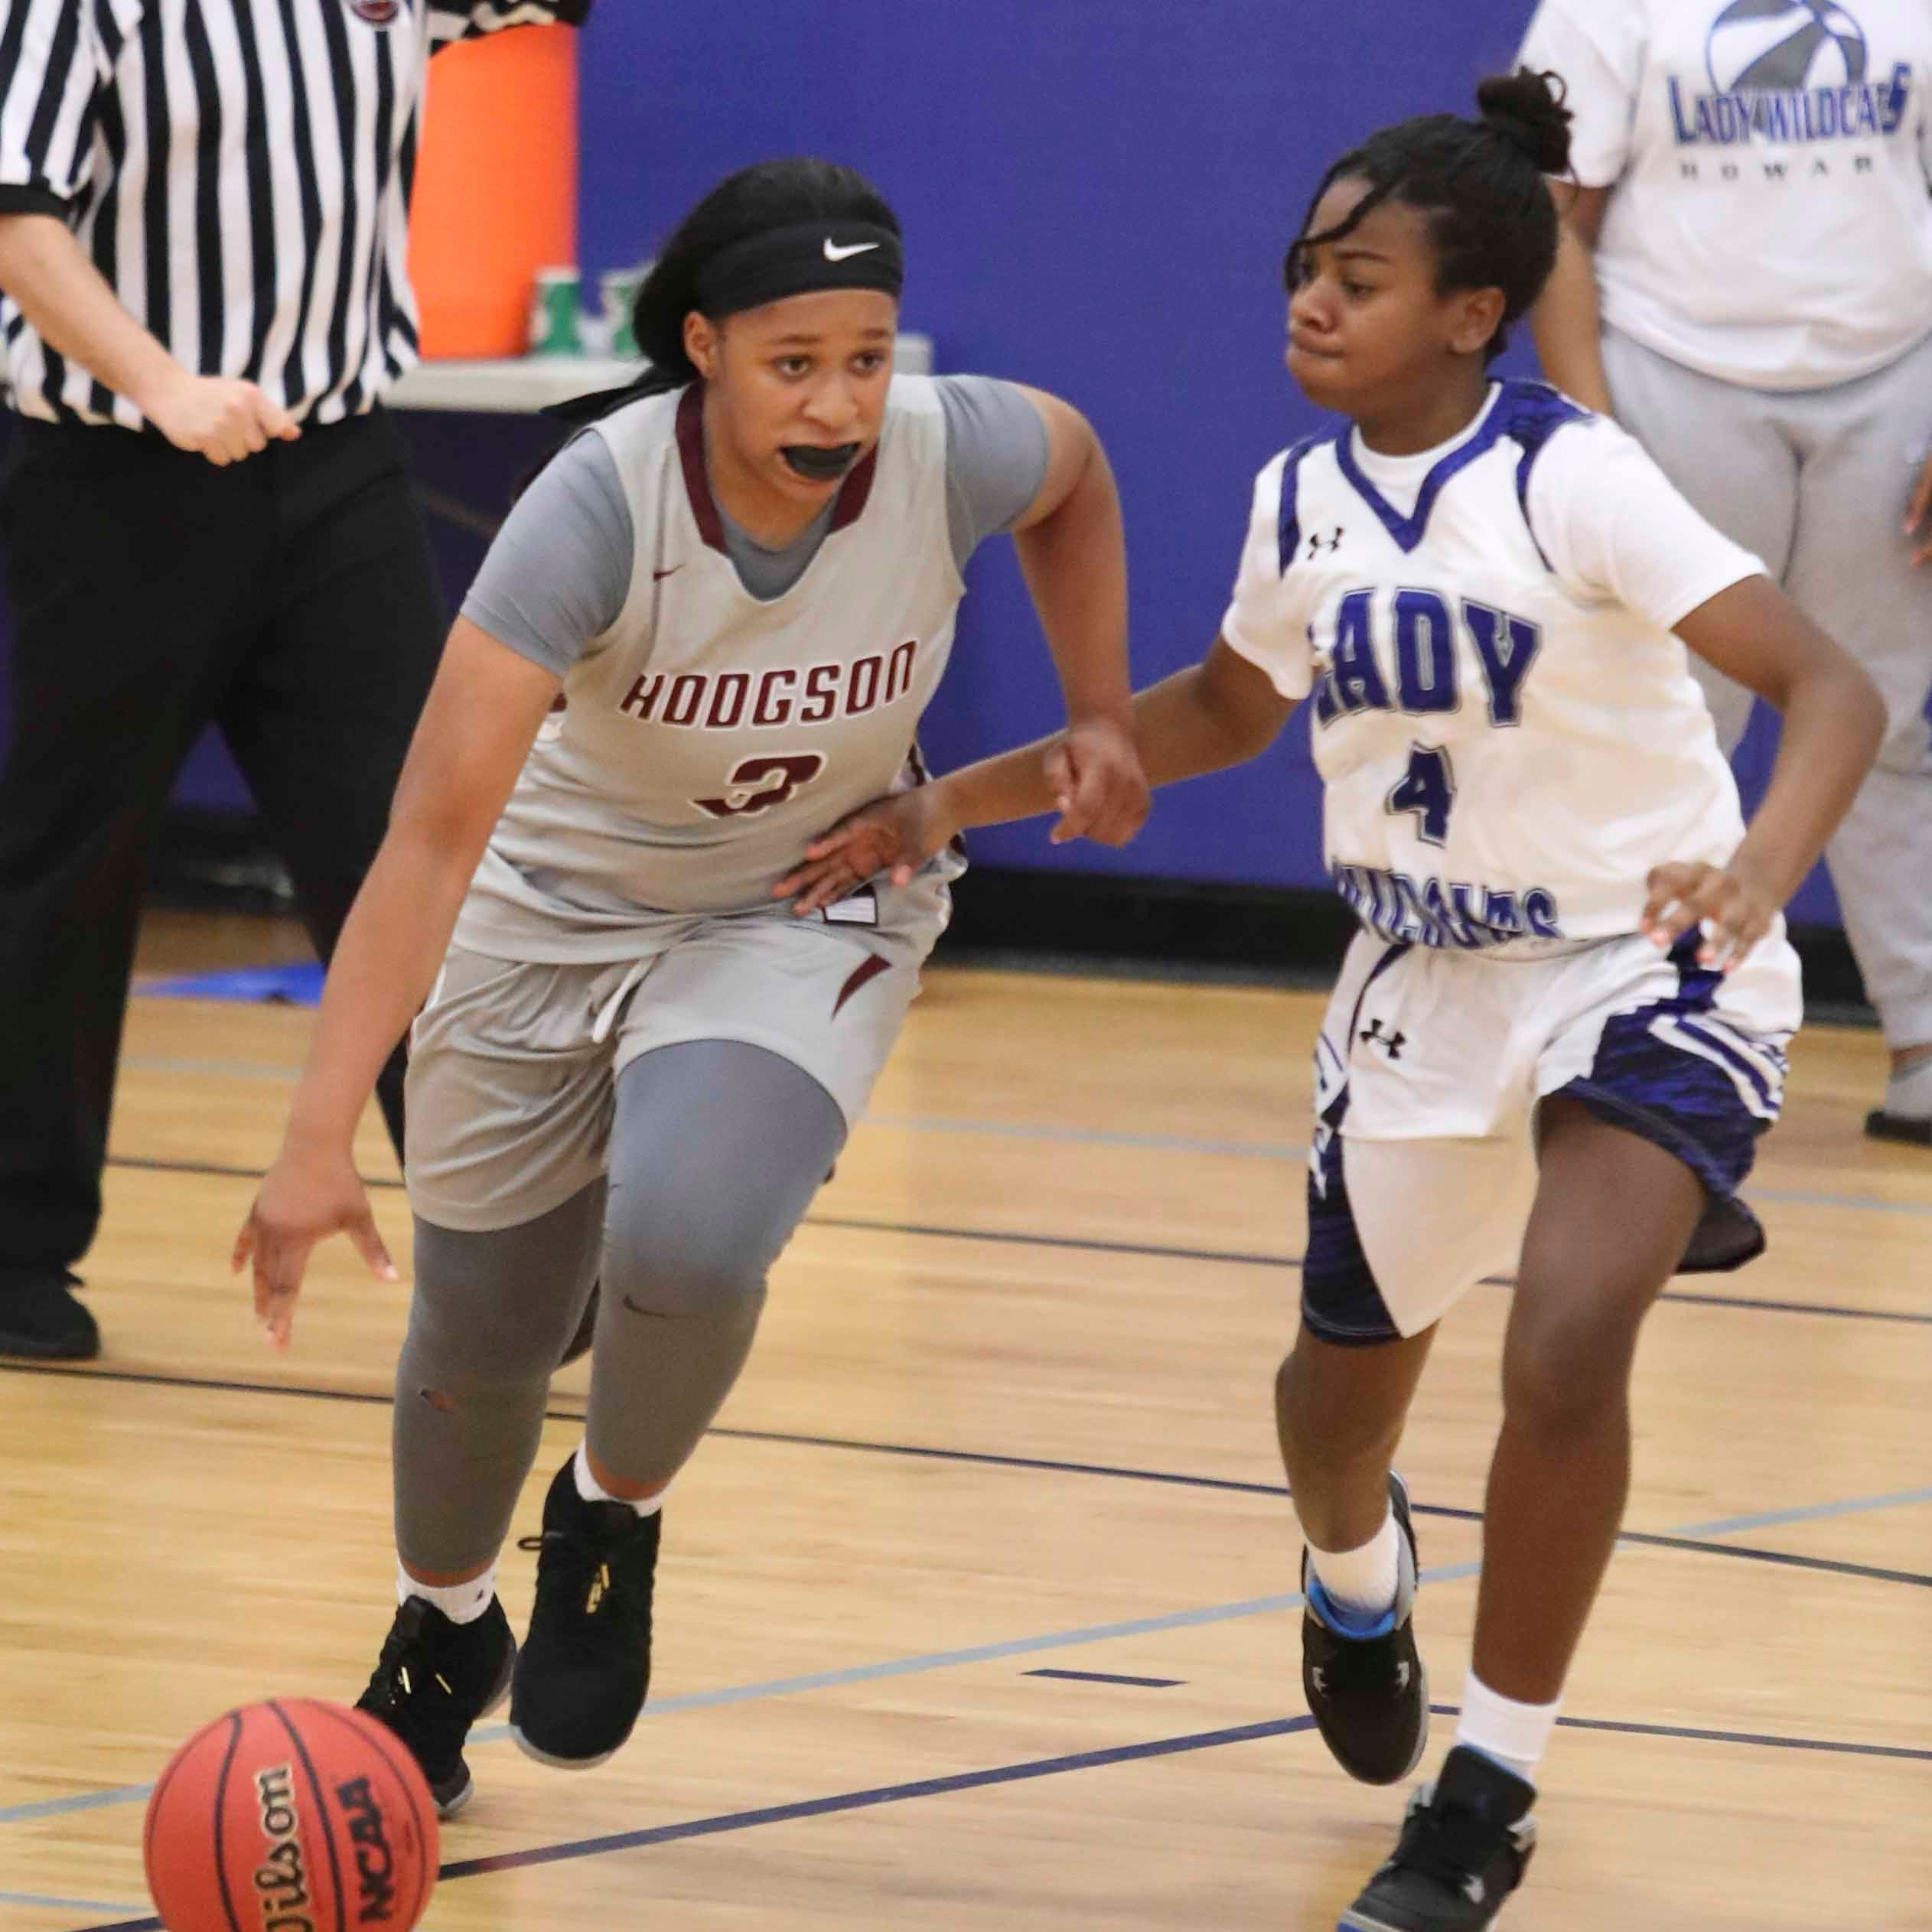 Ranking the Midseason Top 25 players in Delaware high school girls basketball